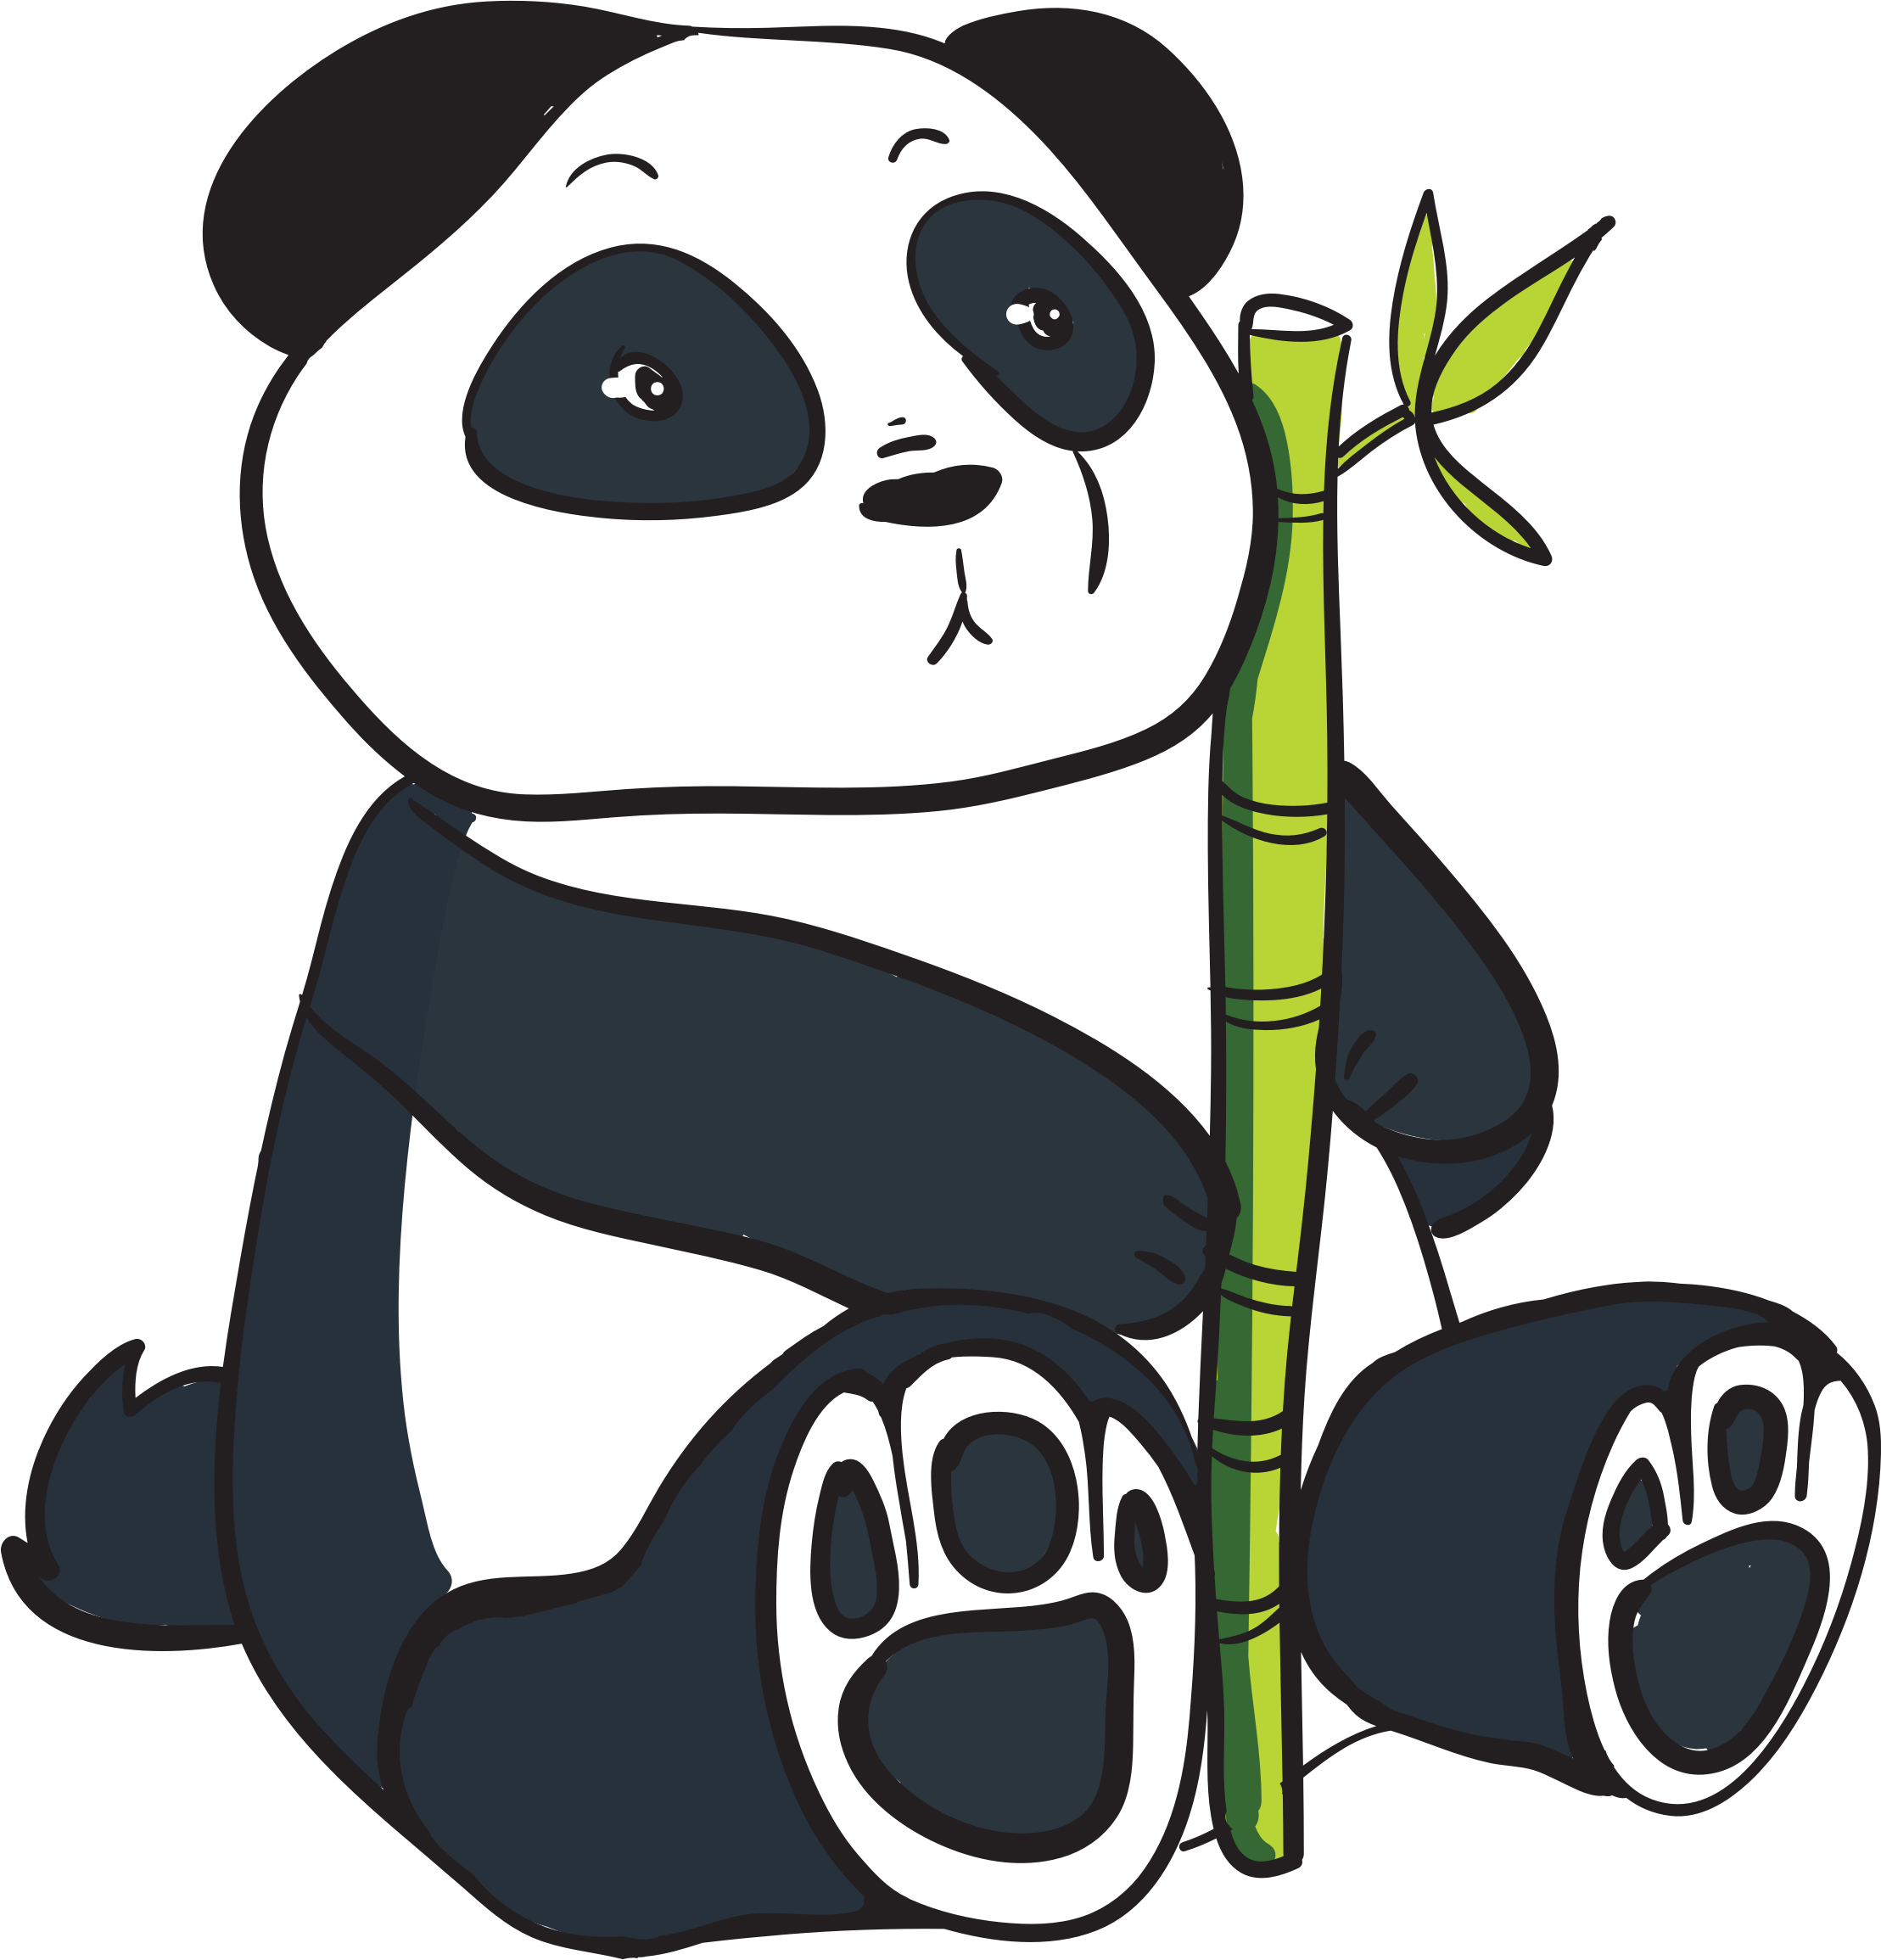 Search clipart panda png black and white Search clipart panda - ClipartFest png black and white